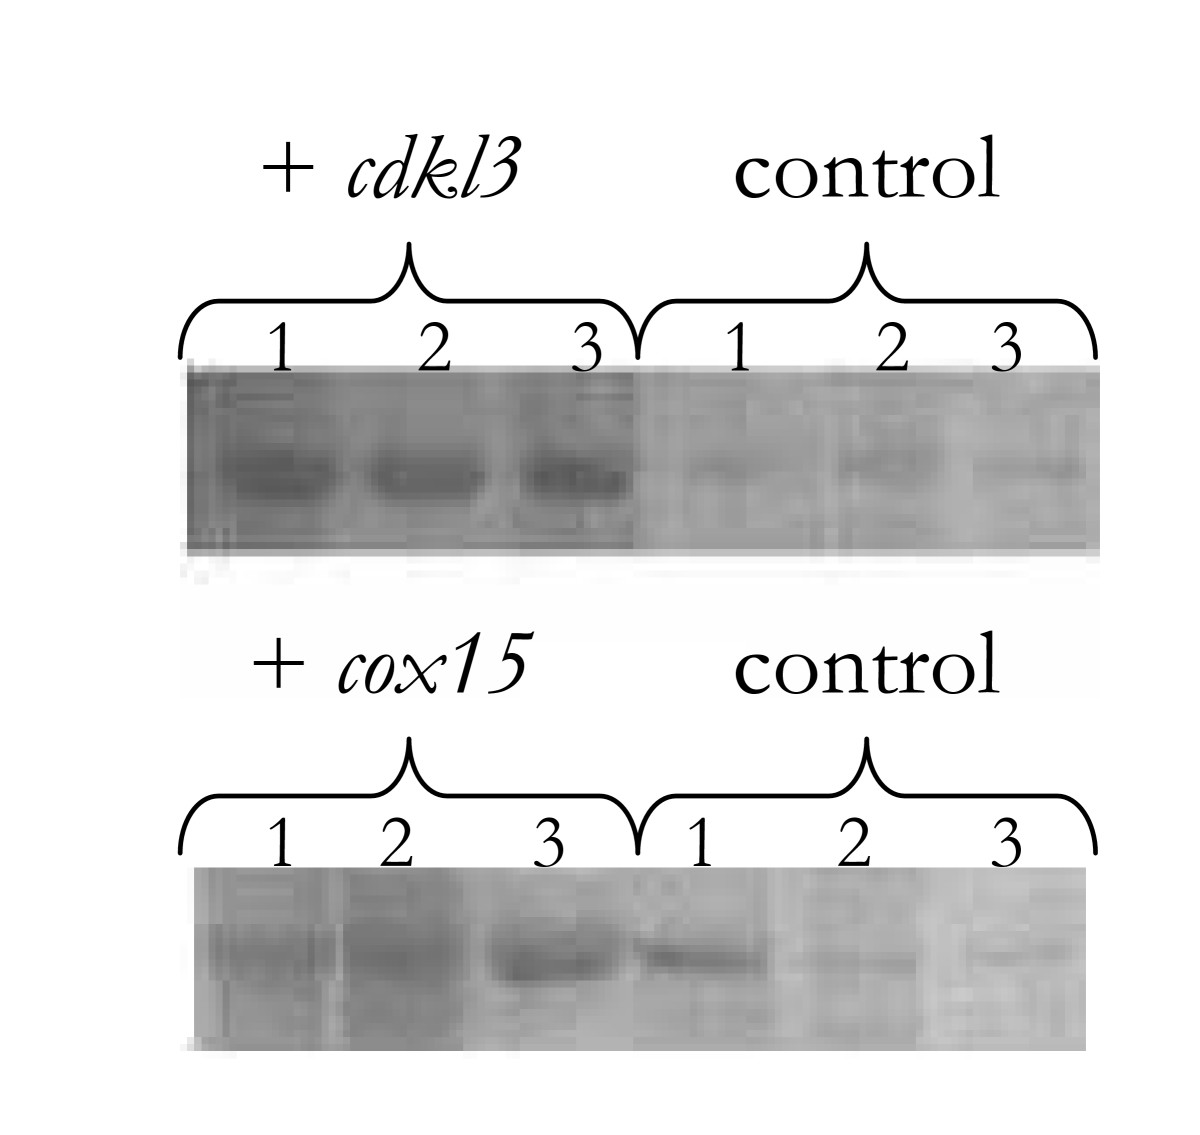 https://static-content.springer.com/image/art%3A10.1186%2F1472-6750-7-71/MediaObjects/12896_2007_Article_246_Fig3_HTML.jpg